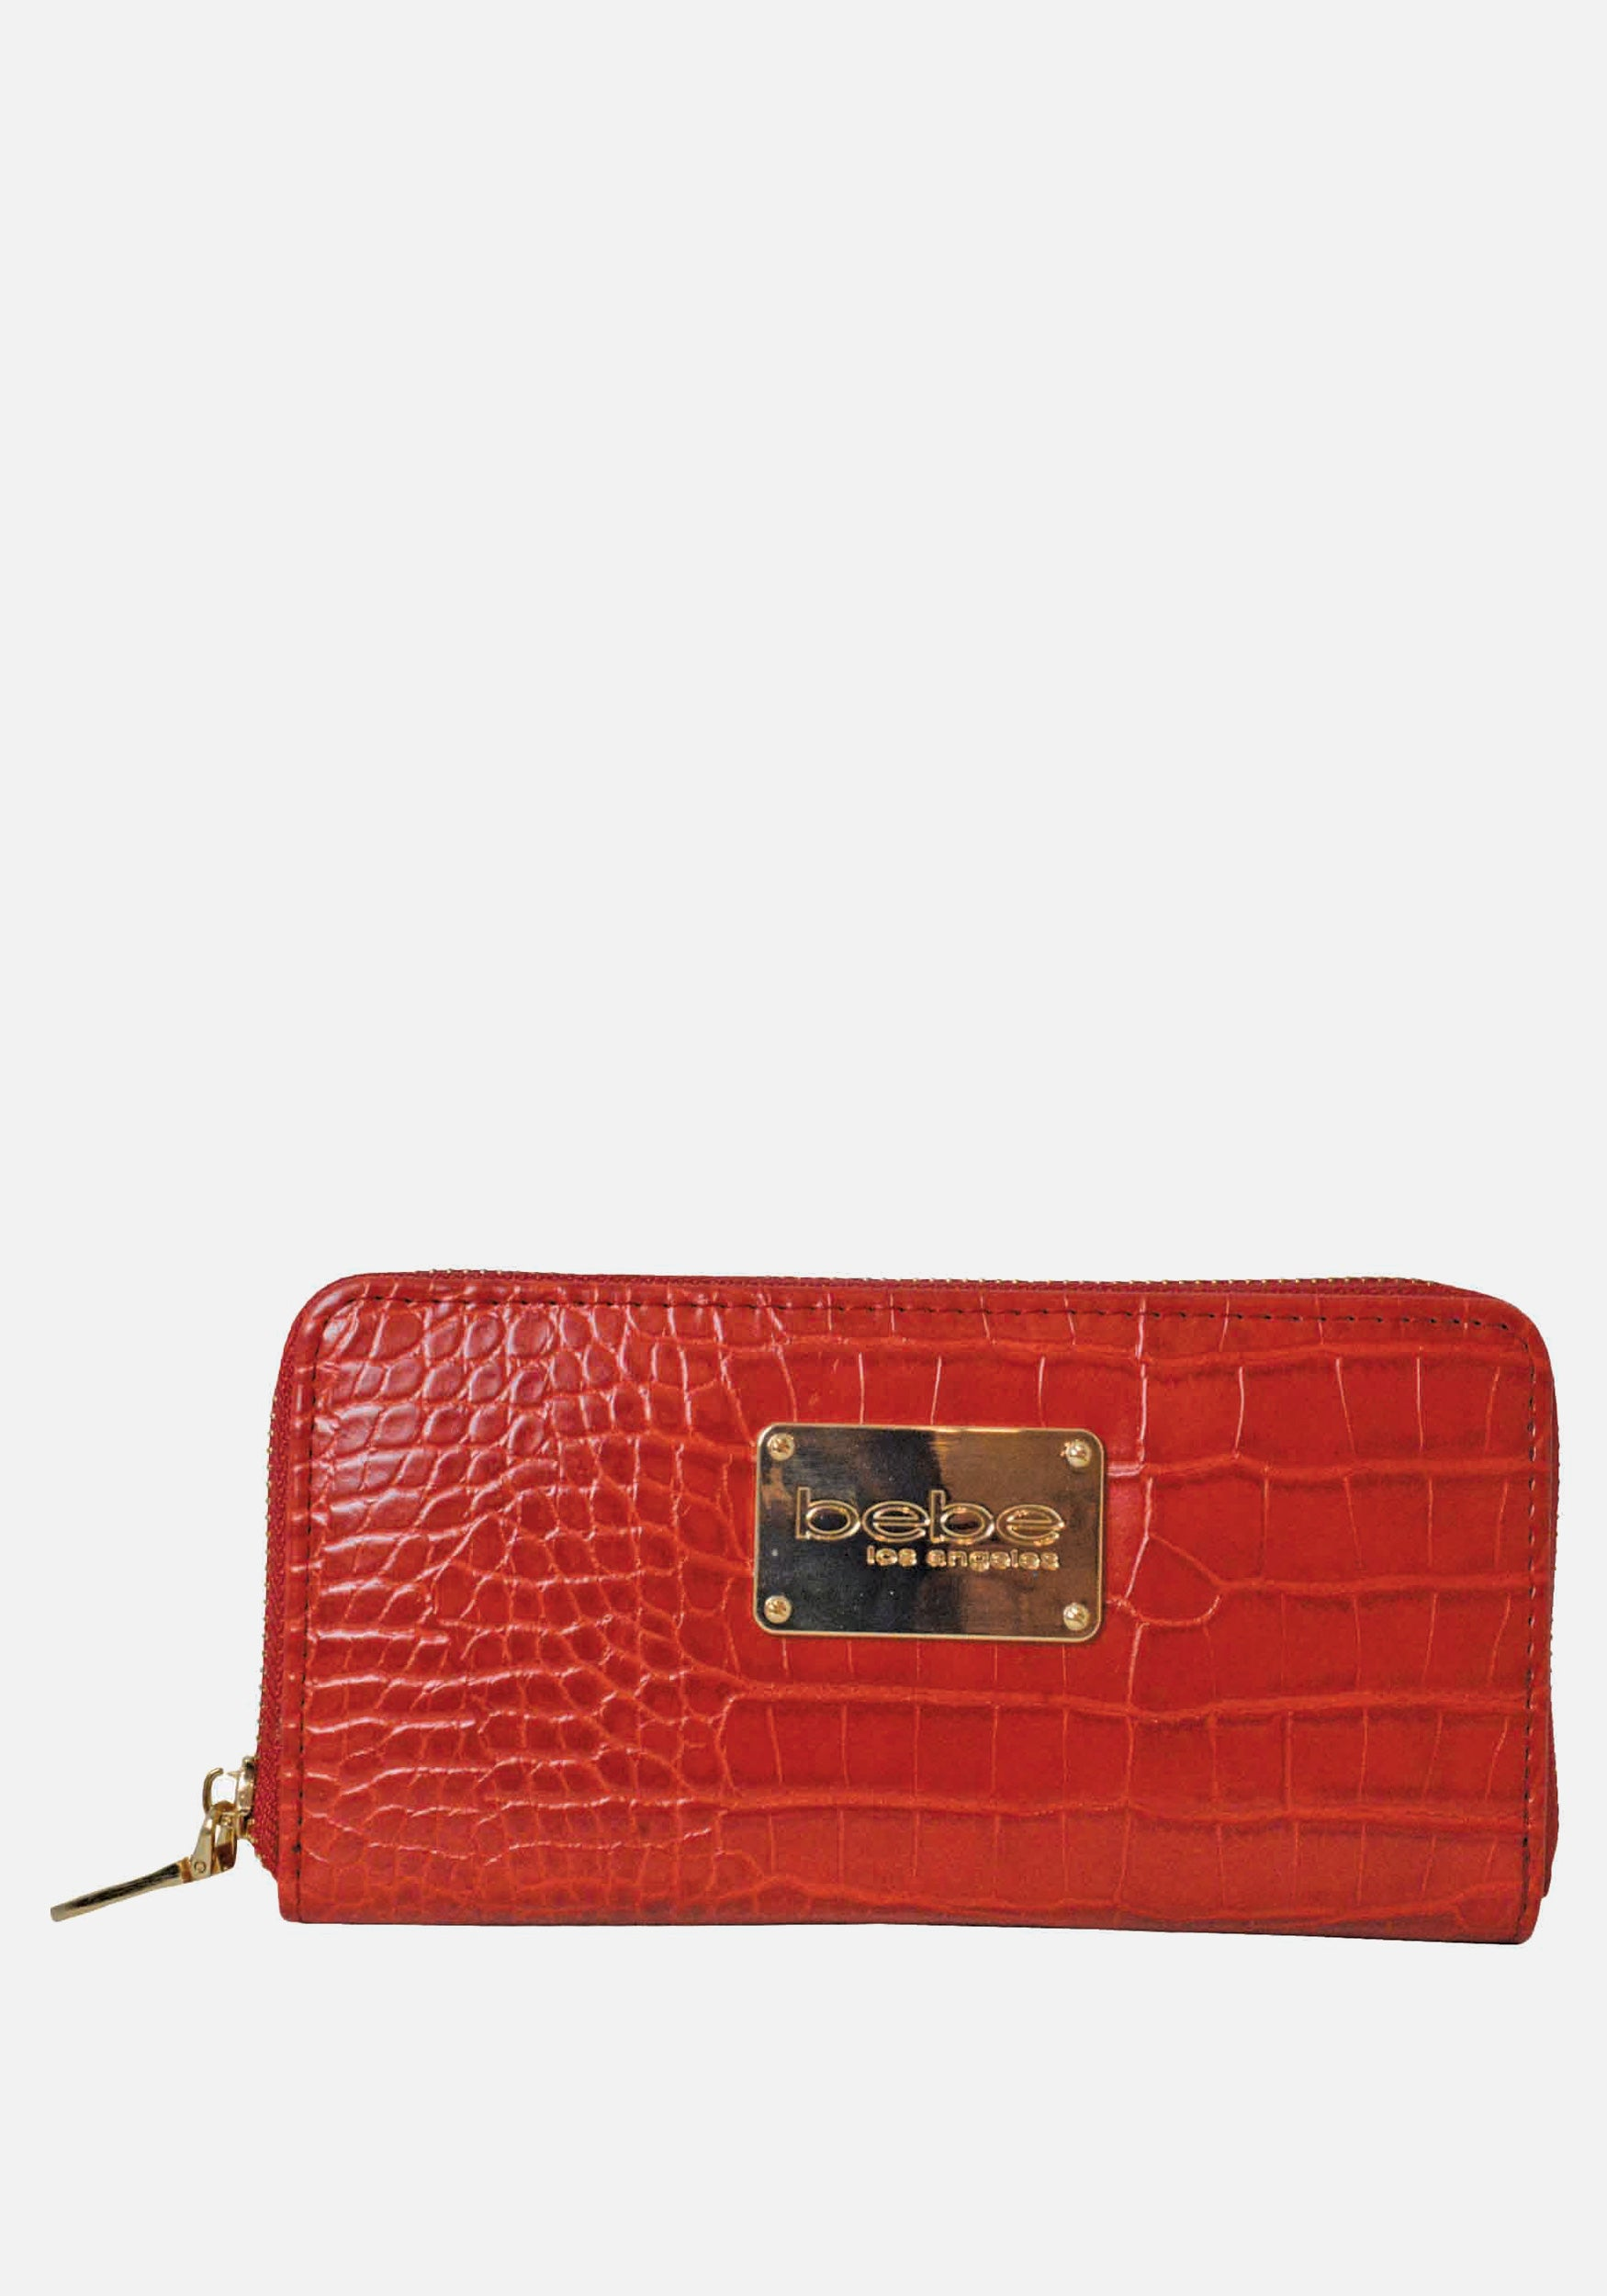 Bebe Women's Natalia Croco Wallet in Candy Apple Polyester